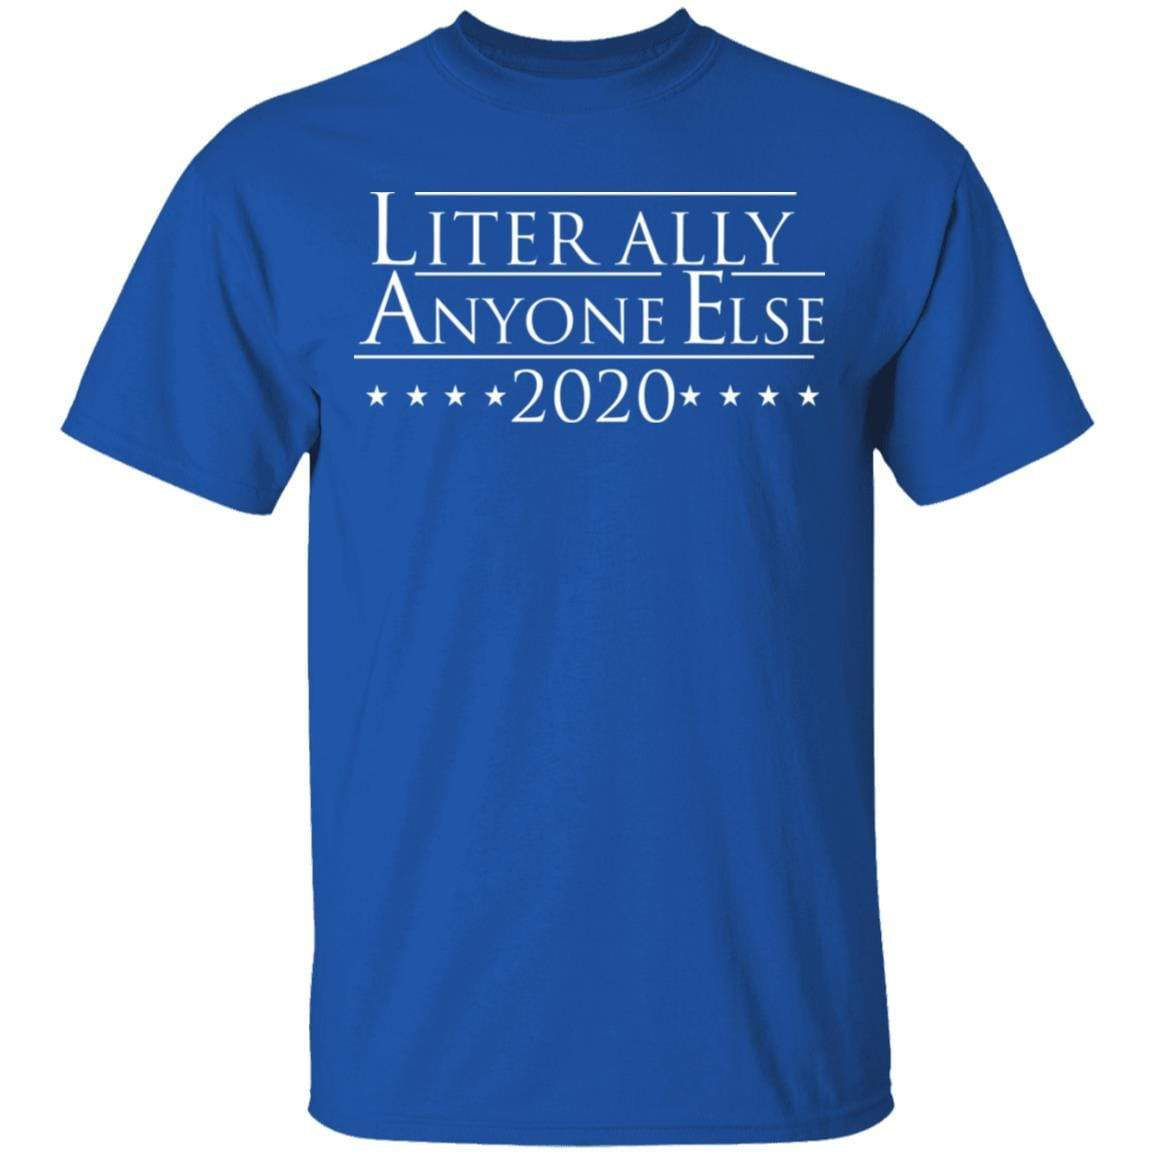 Literally Anyone Else 2020 T-Shirts, Hoodies 1049-9971-88765989-48286 - Tee Ript